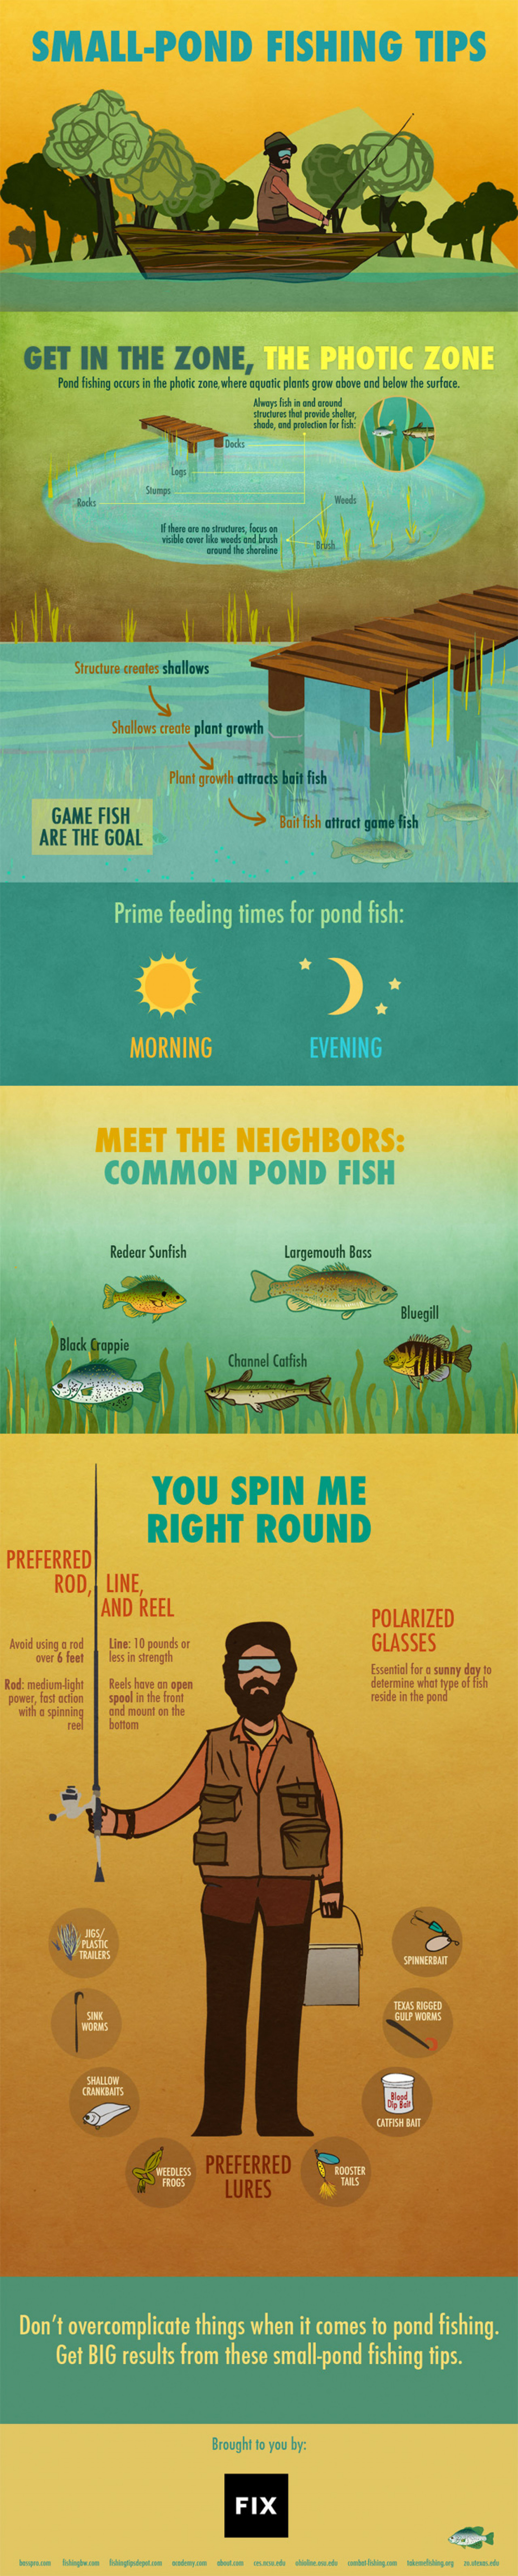 Small Pond Fishing Tips Infographic